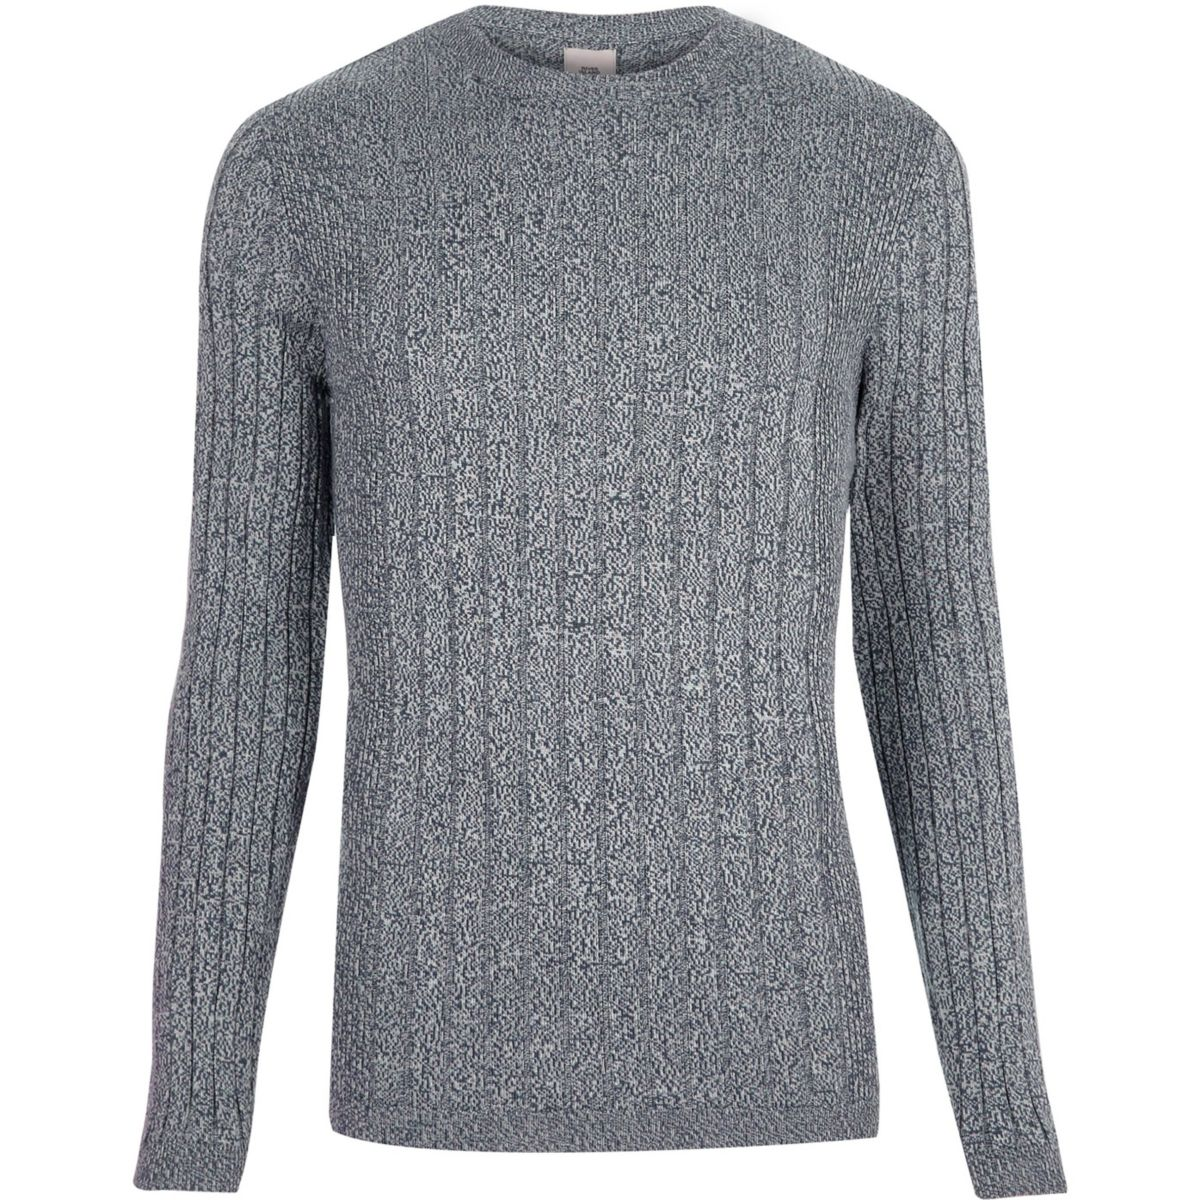 Light blue ribbed muscle fit crew neck sweater